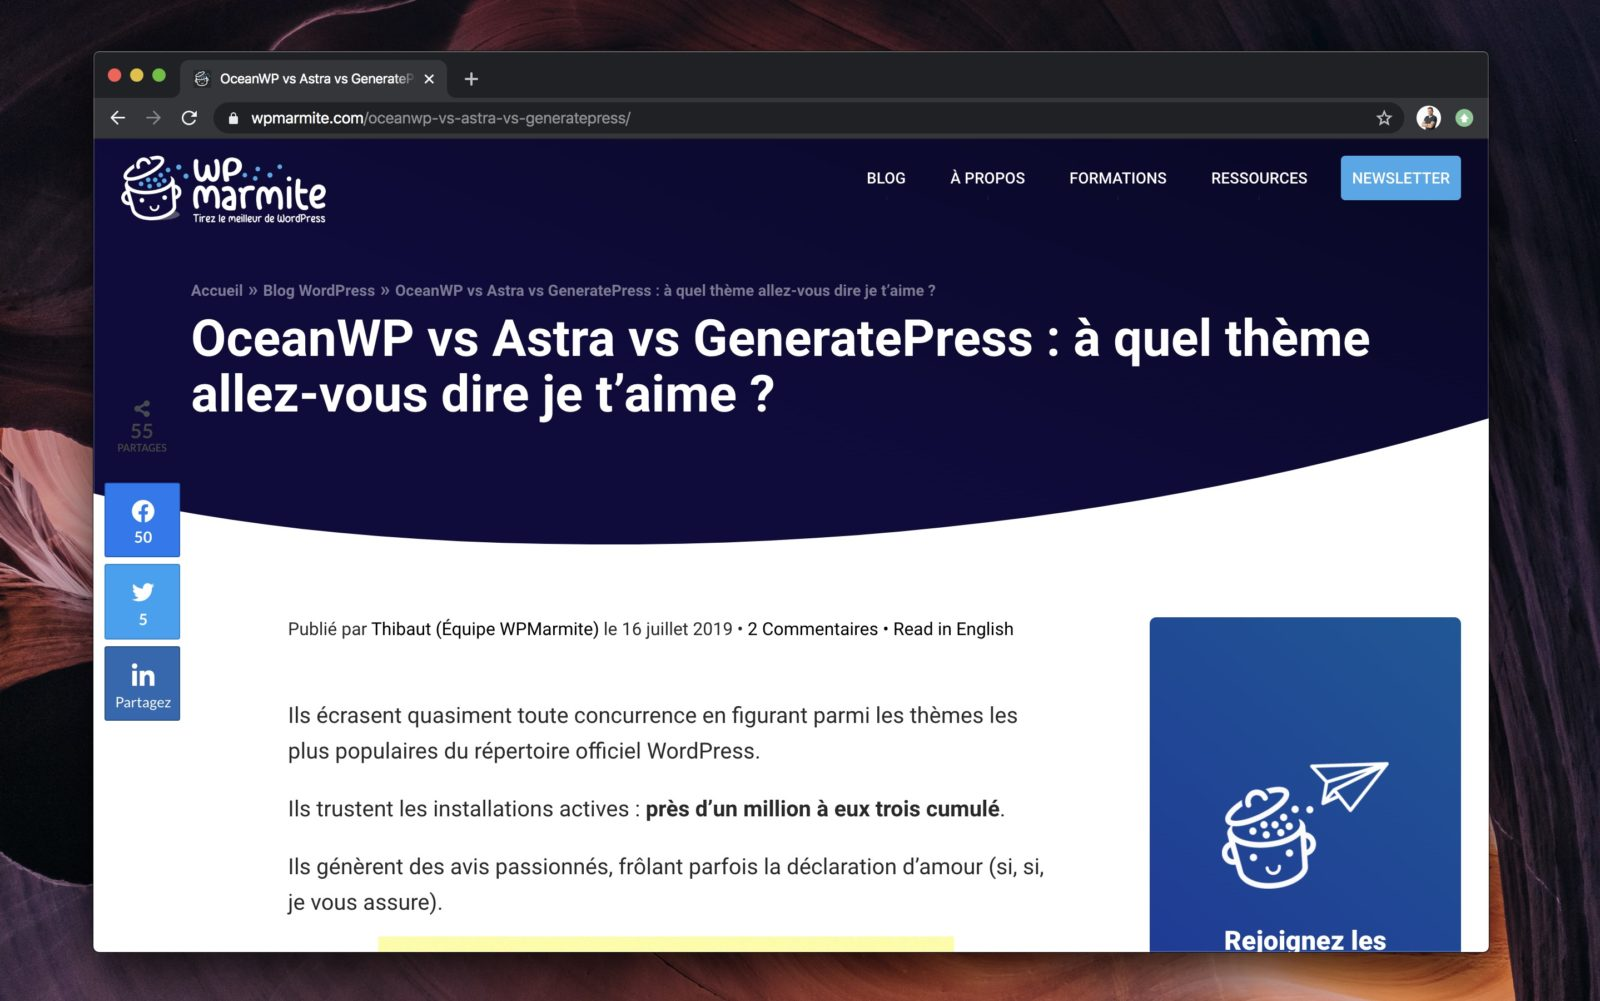 capture d'écran d'un article comparatif sur le site WP Marmite